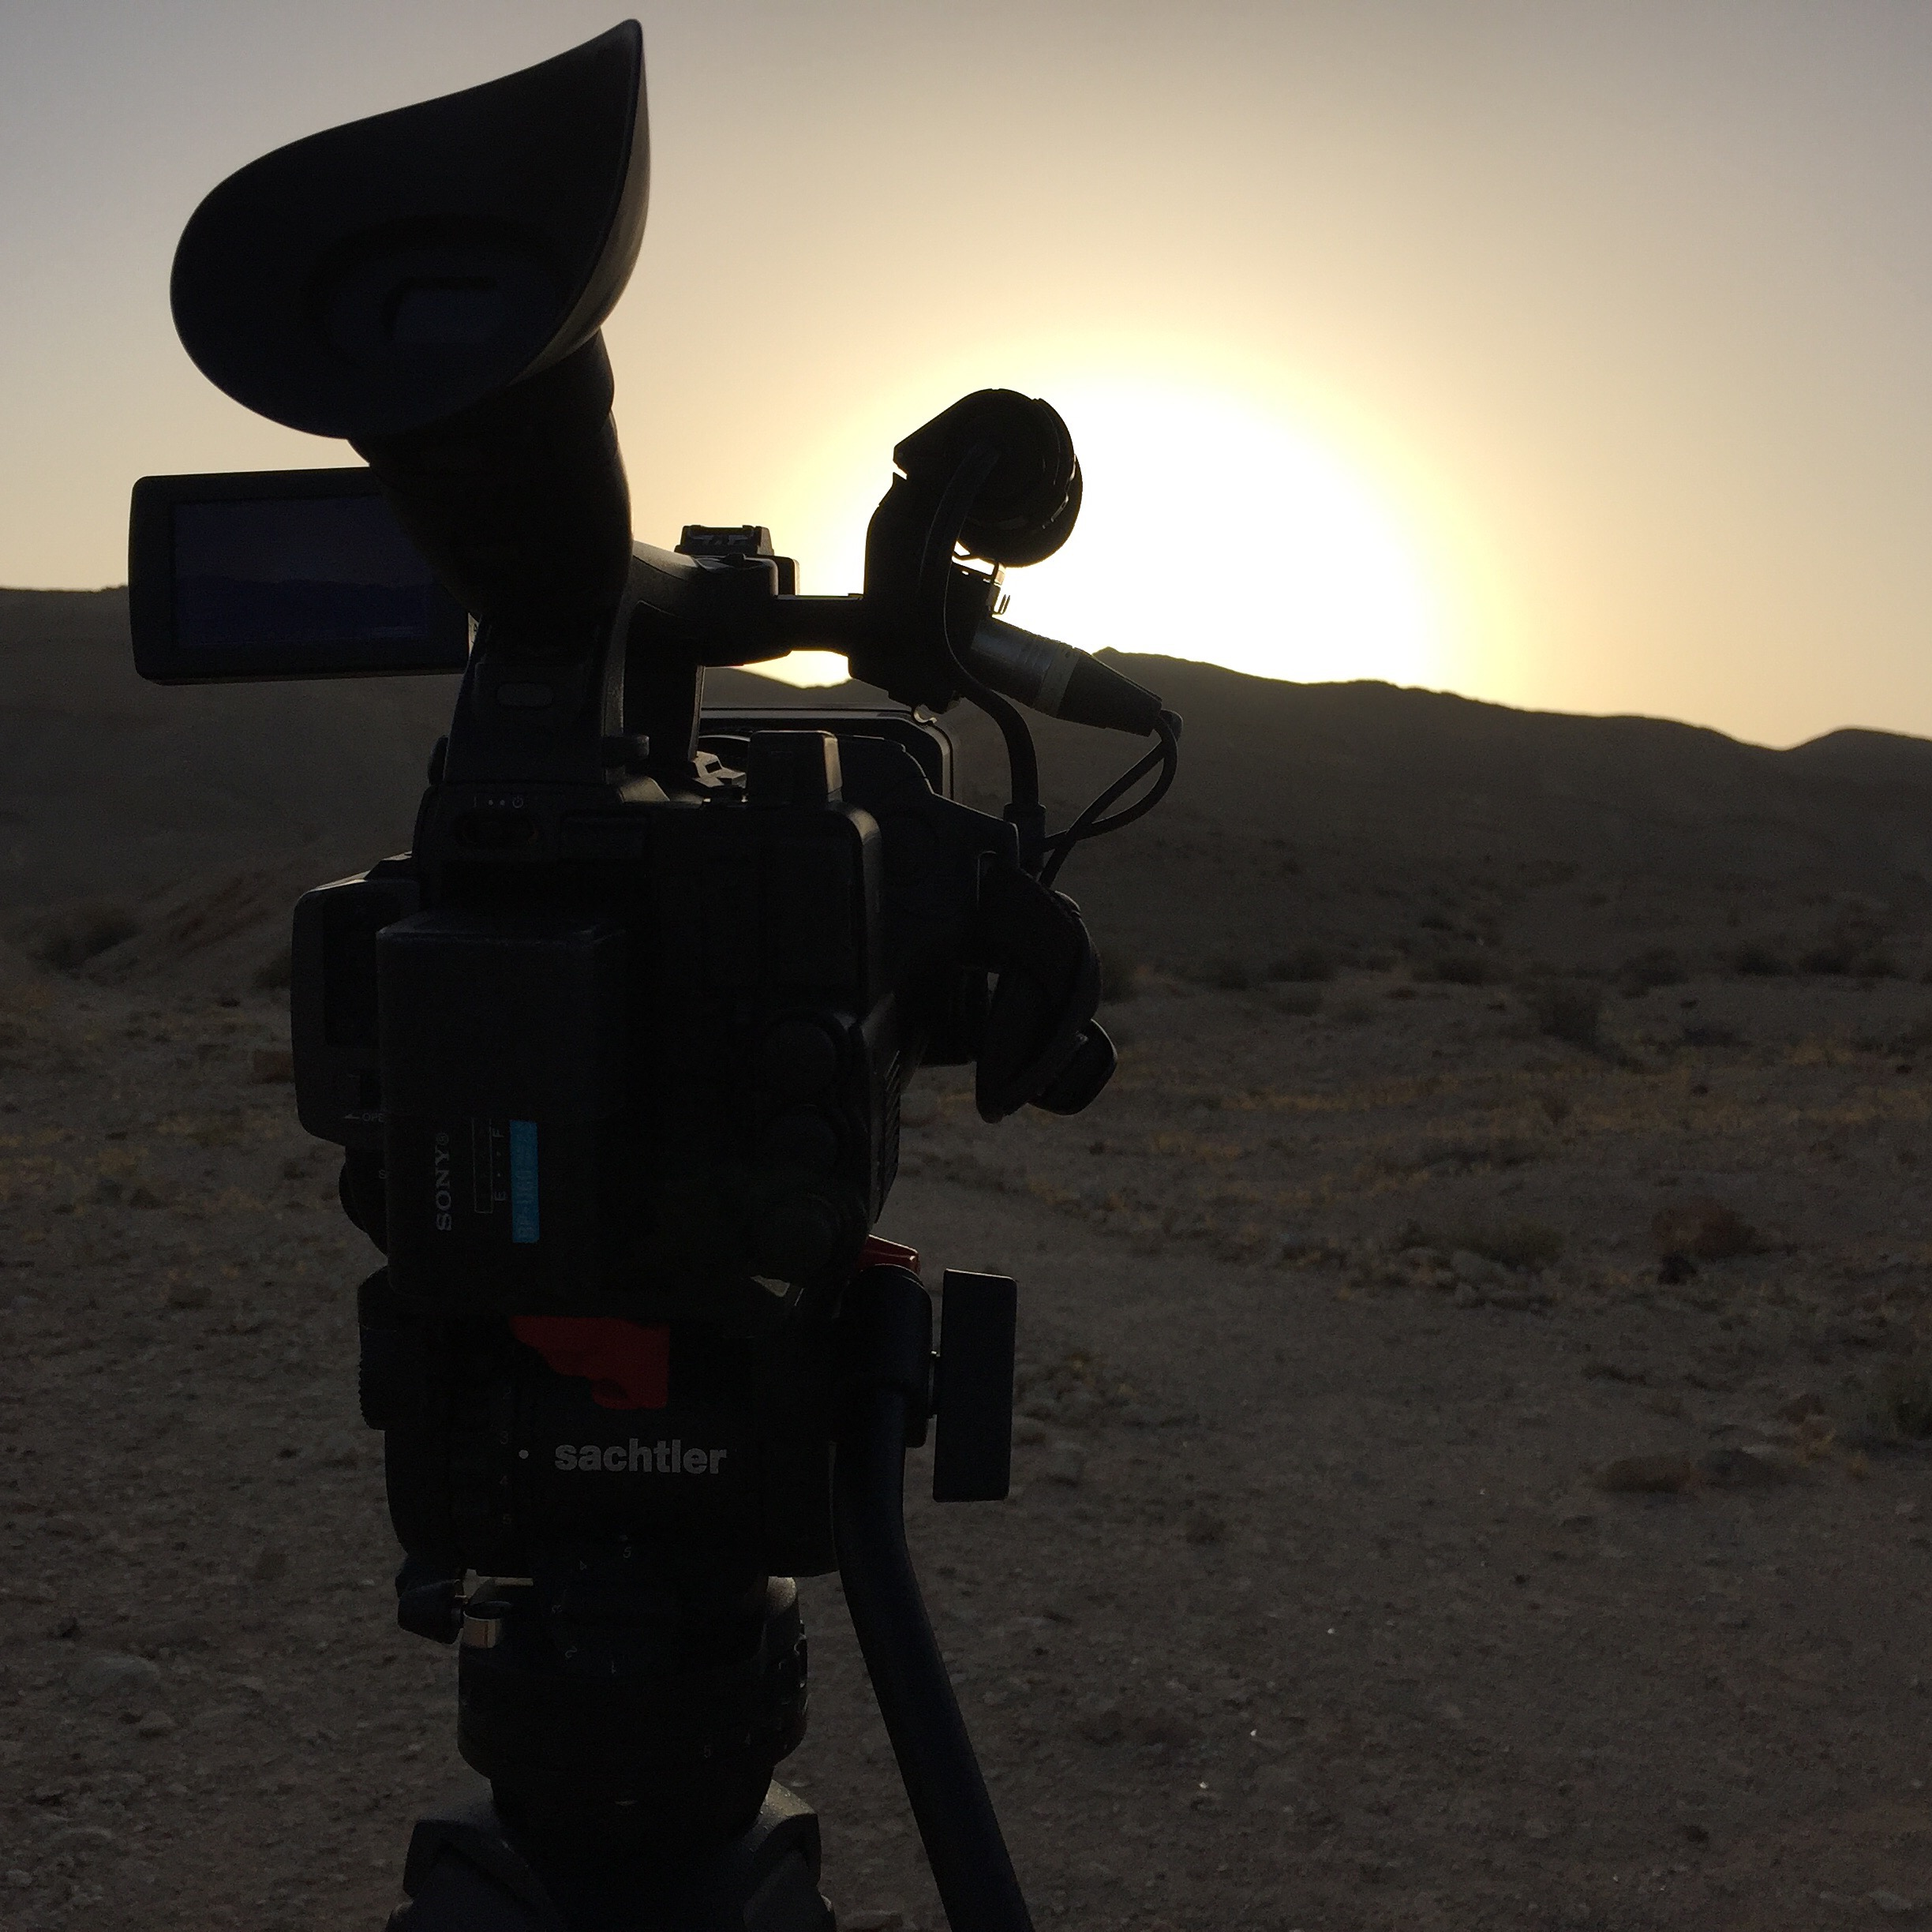 Filming Time Lapse Sequence in the Desert